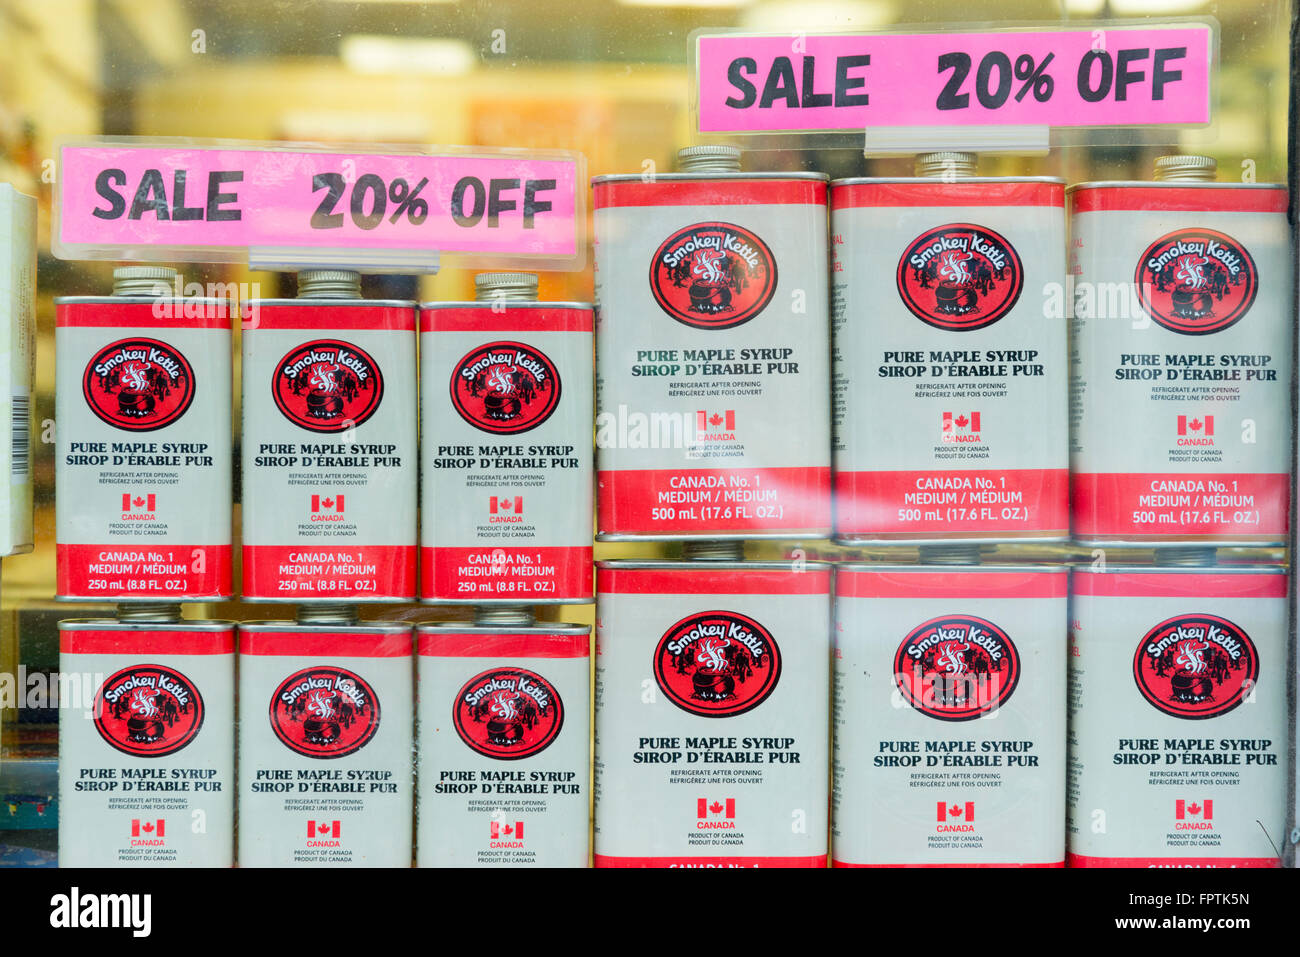 Tins of Maple syrup for sale in a shop window in Banff Canada - Stock Image